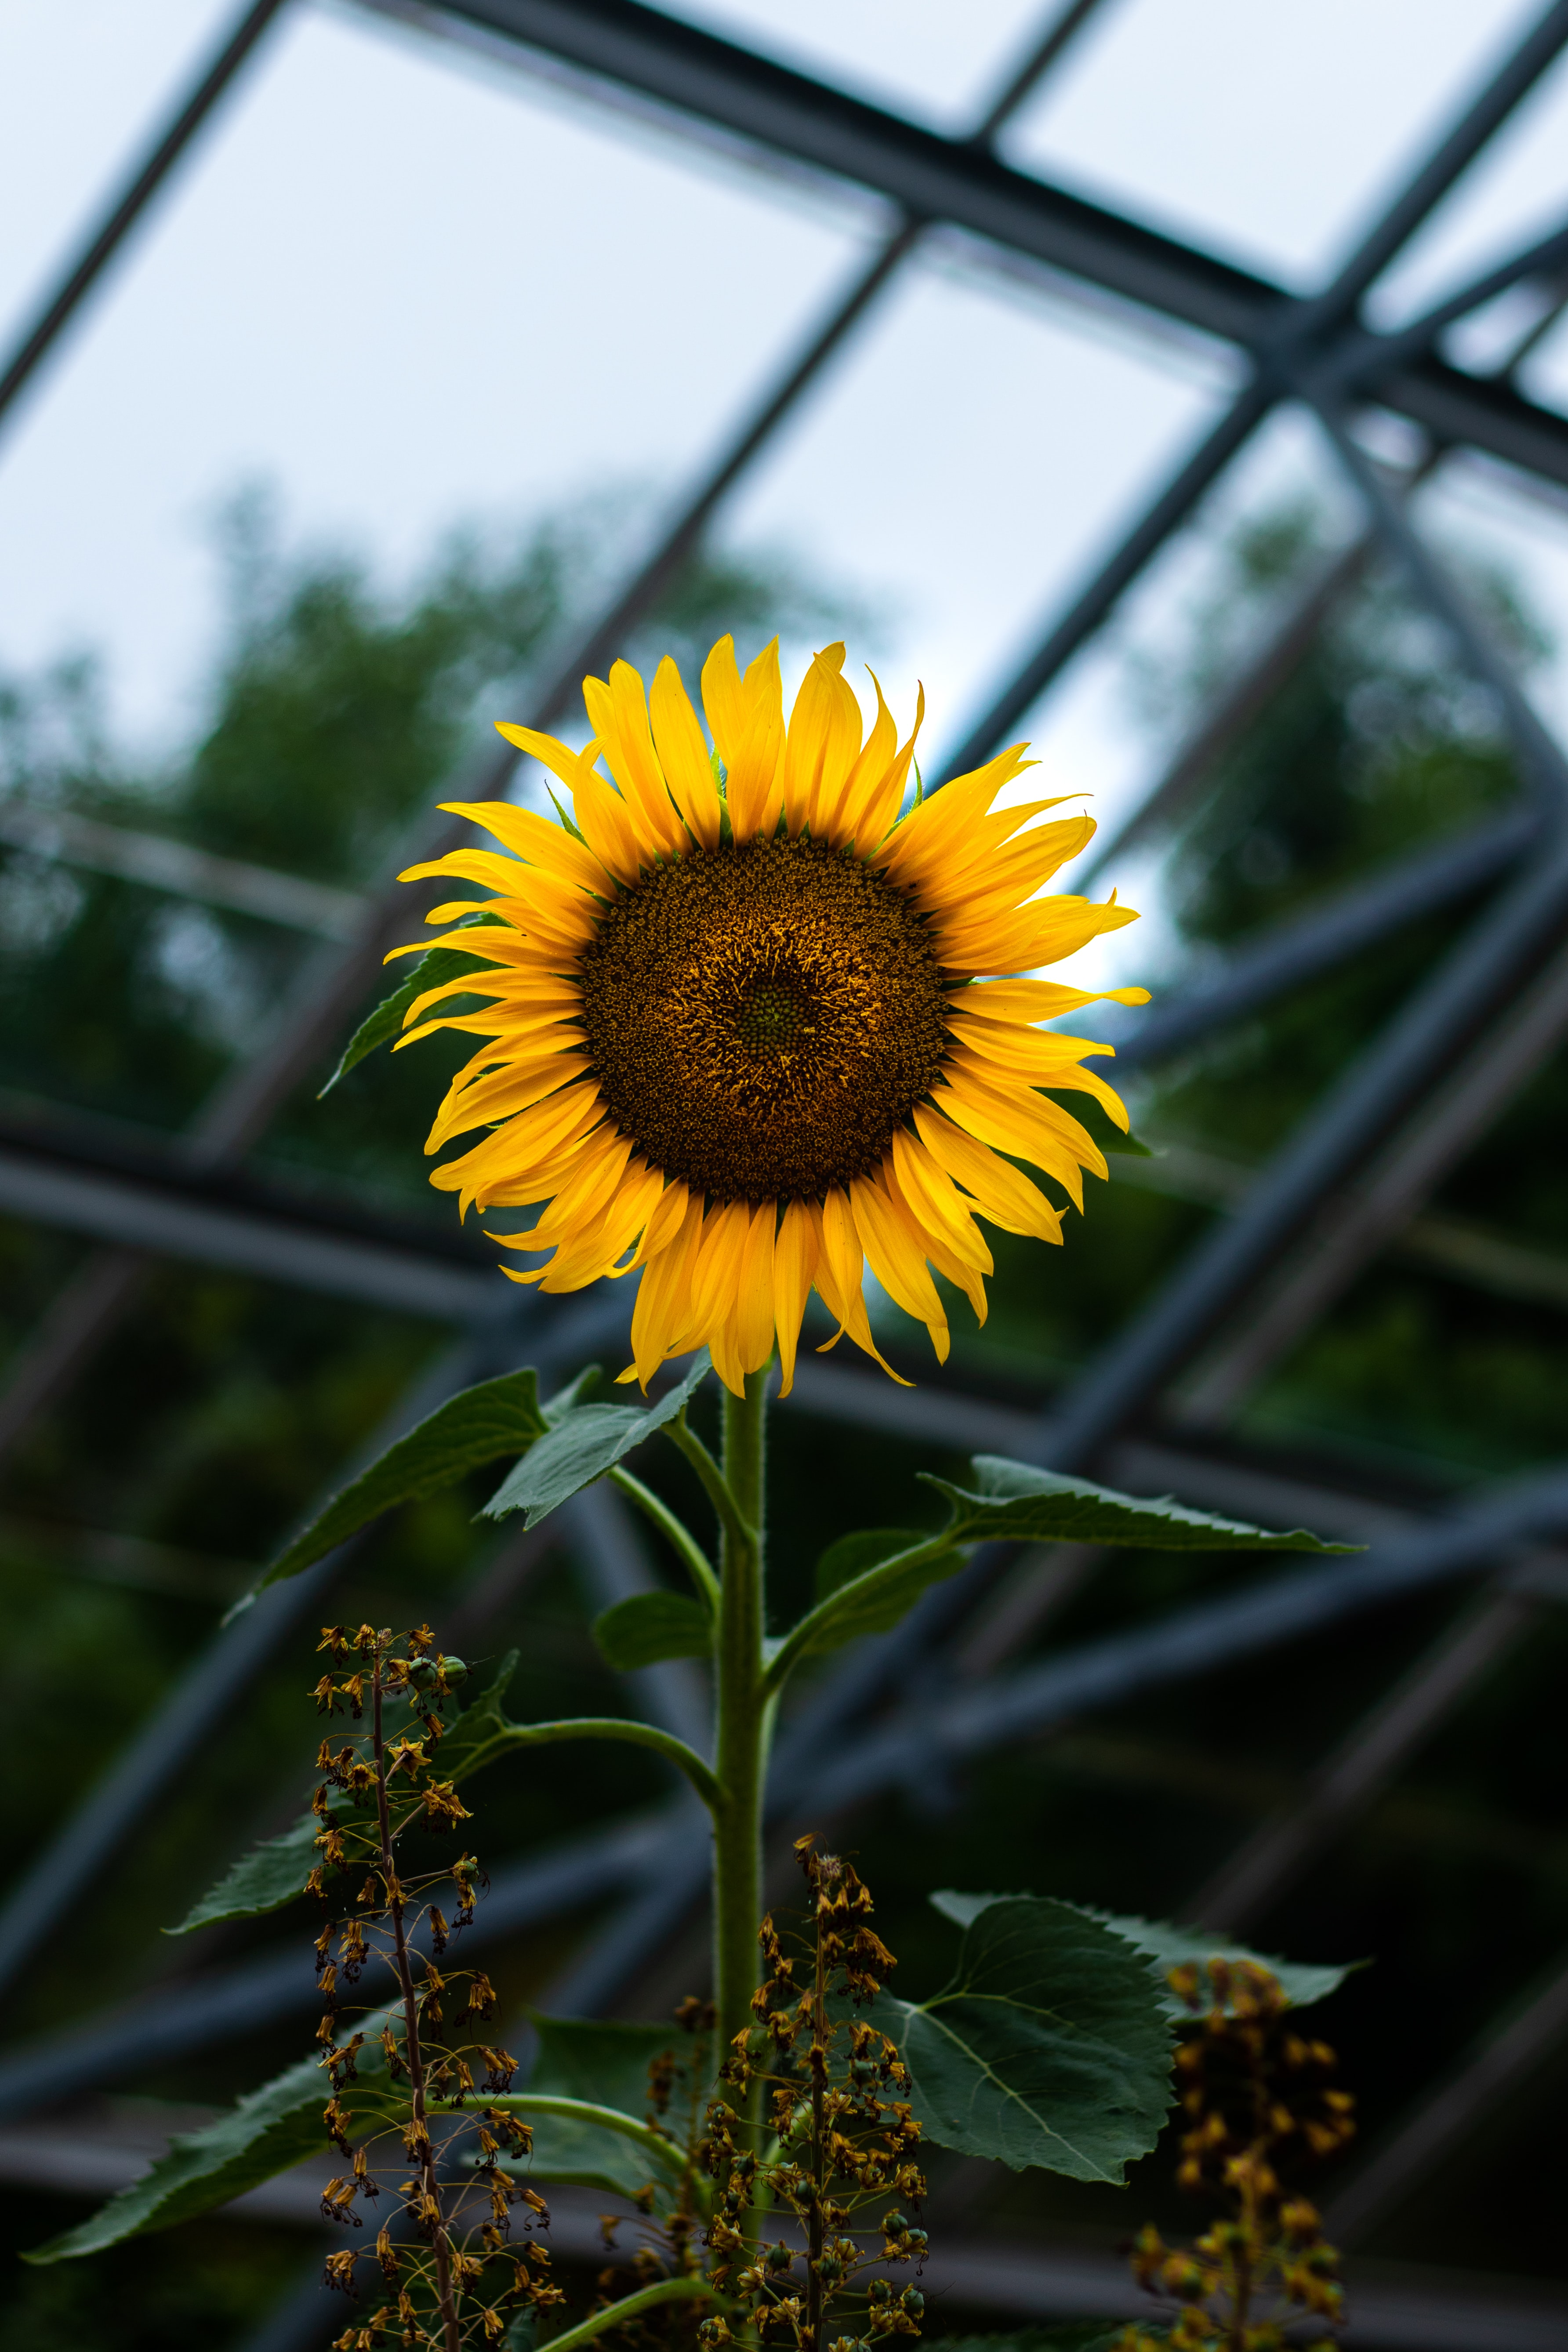 #sunflower positive stories